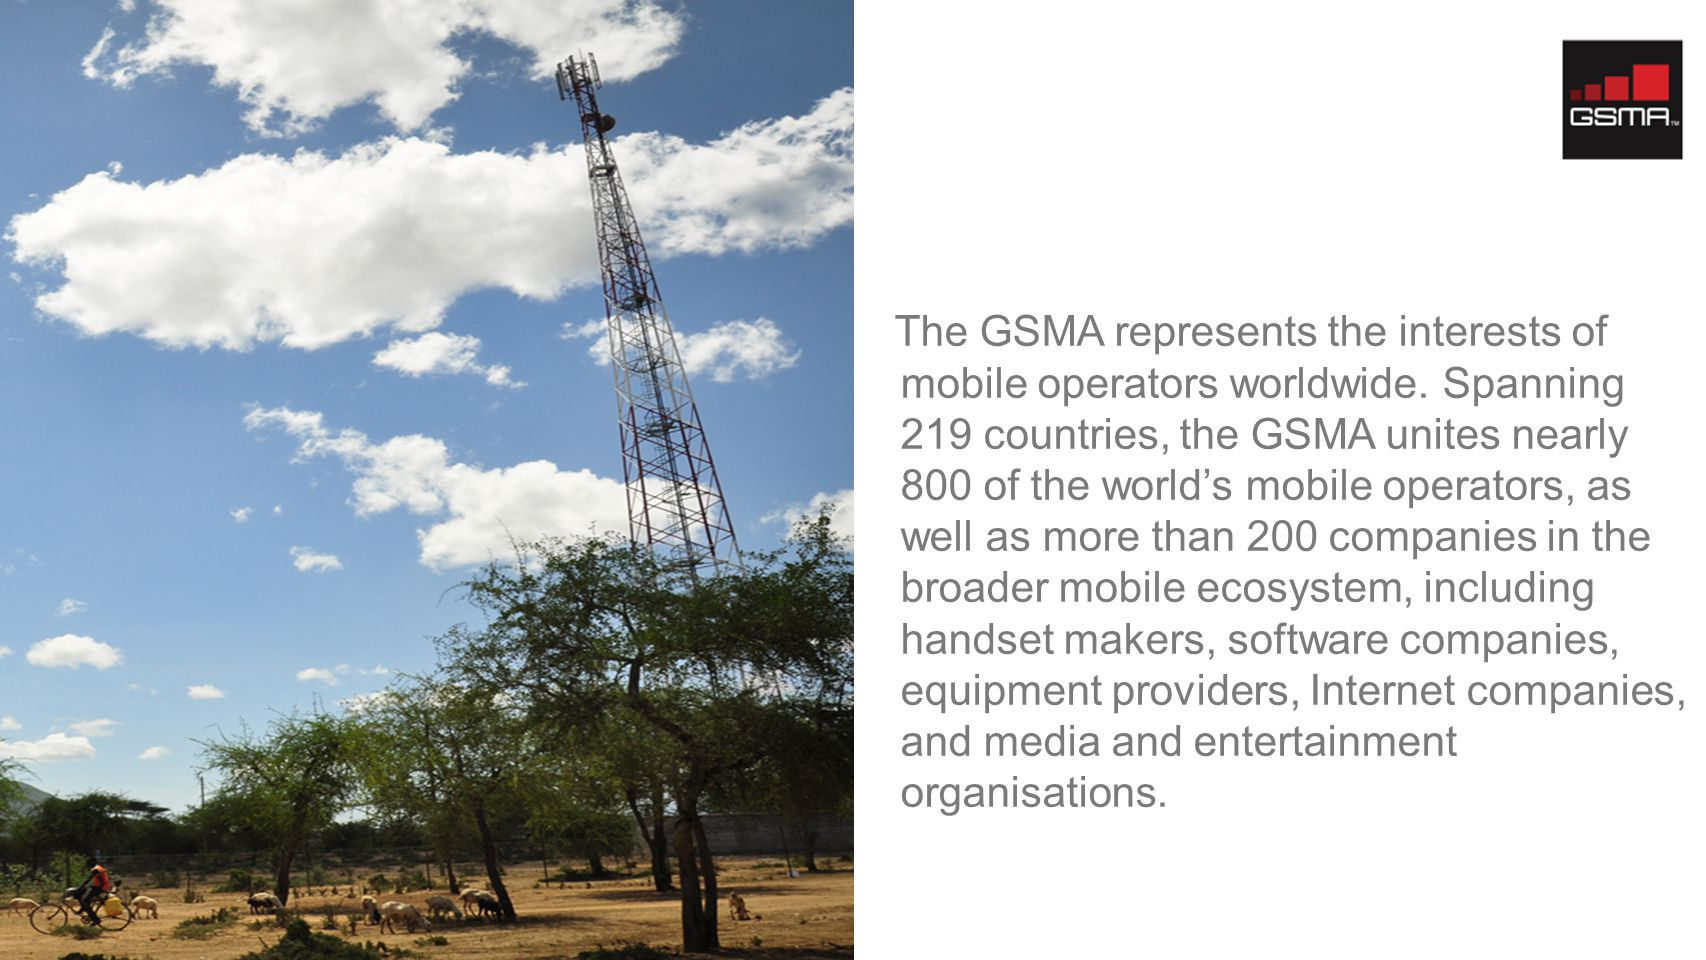 The GSMA represents the interests of mobile operators worldwide.